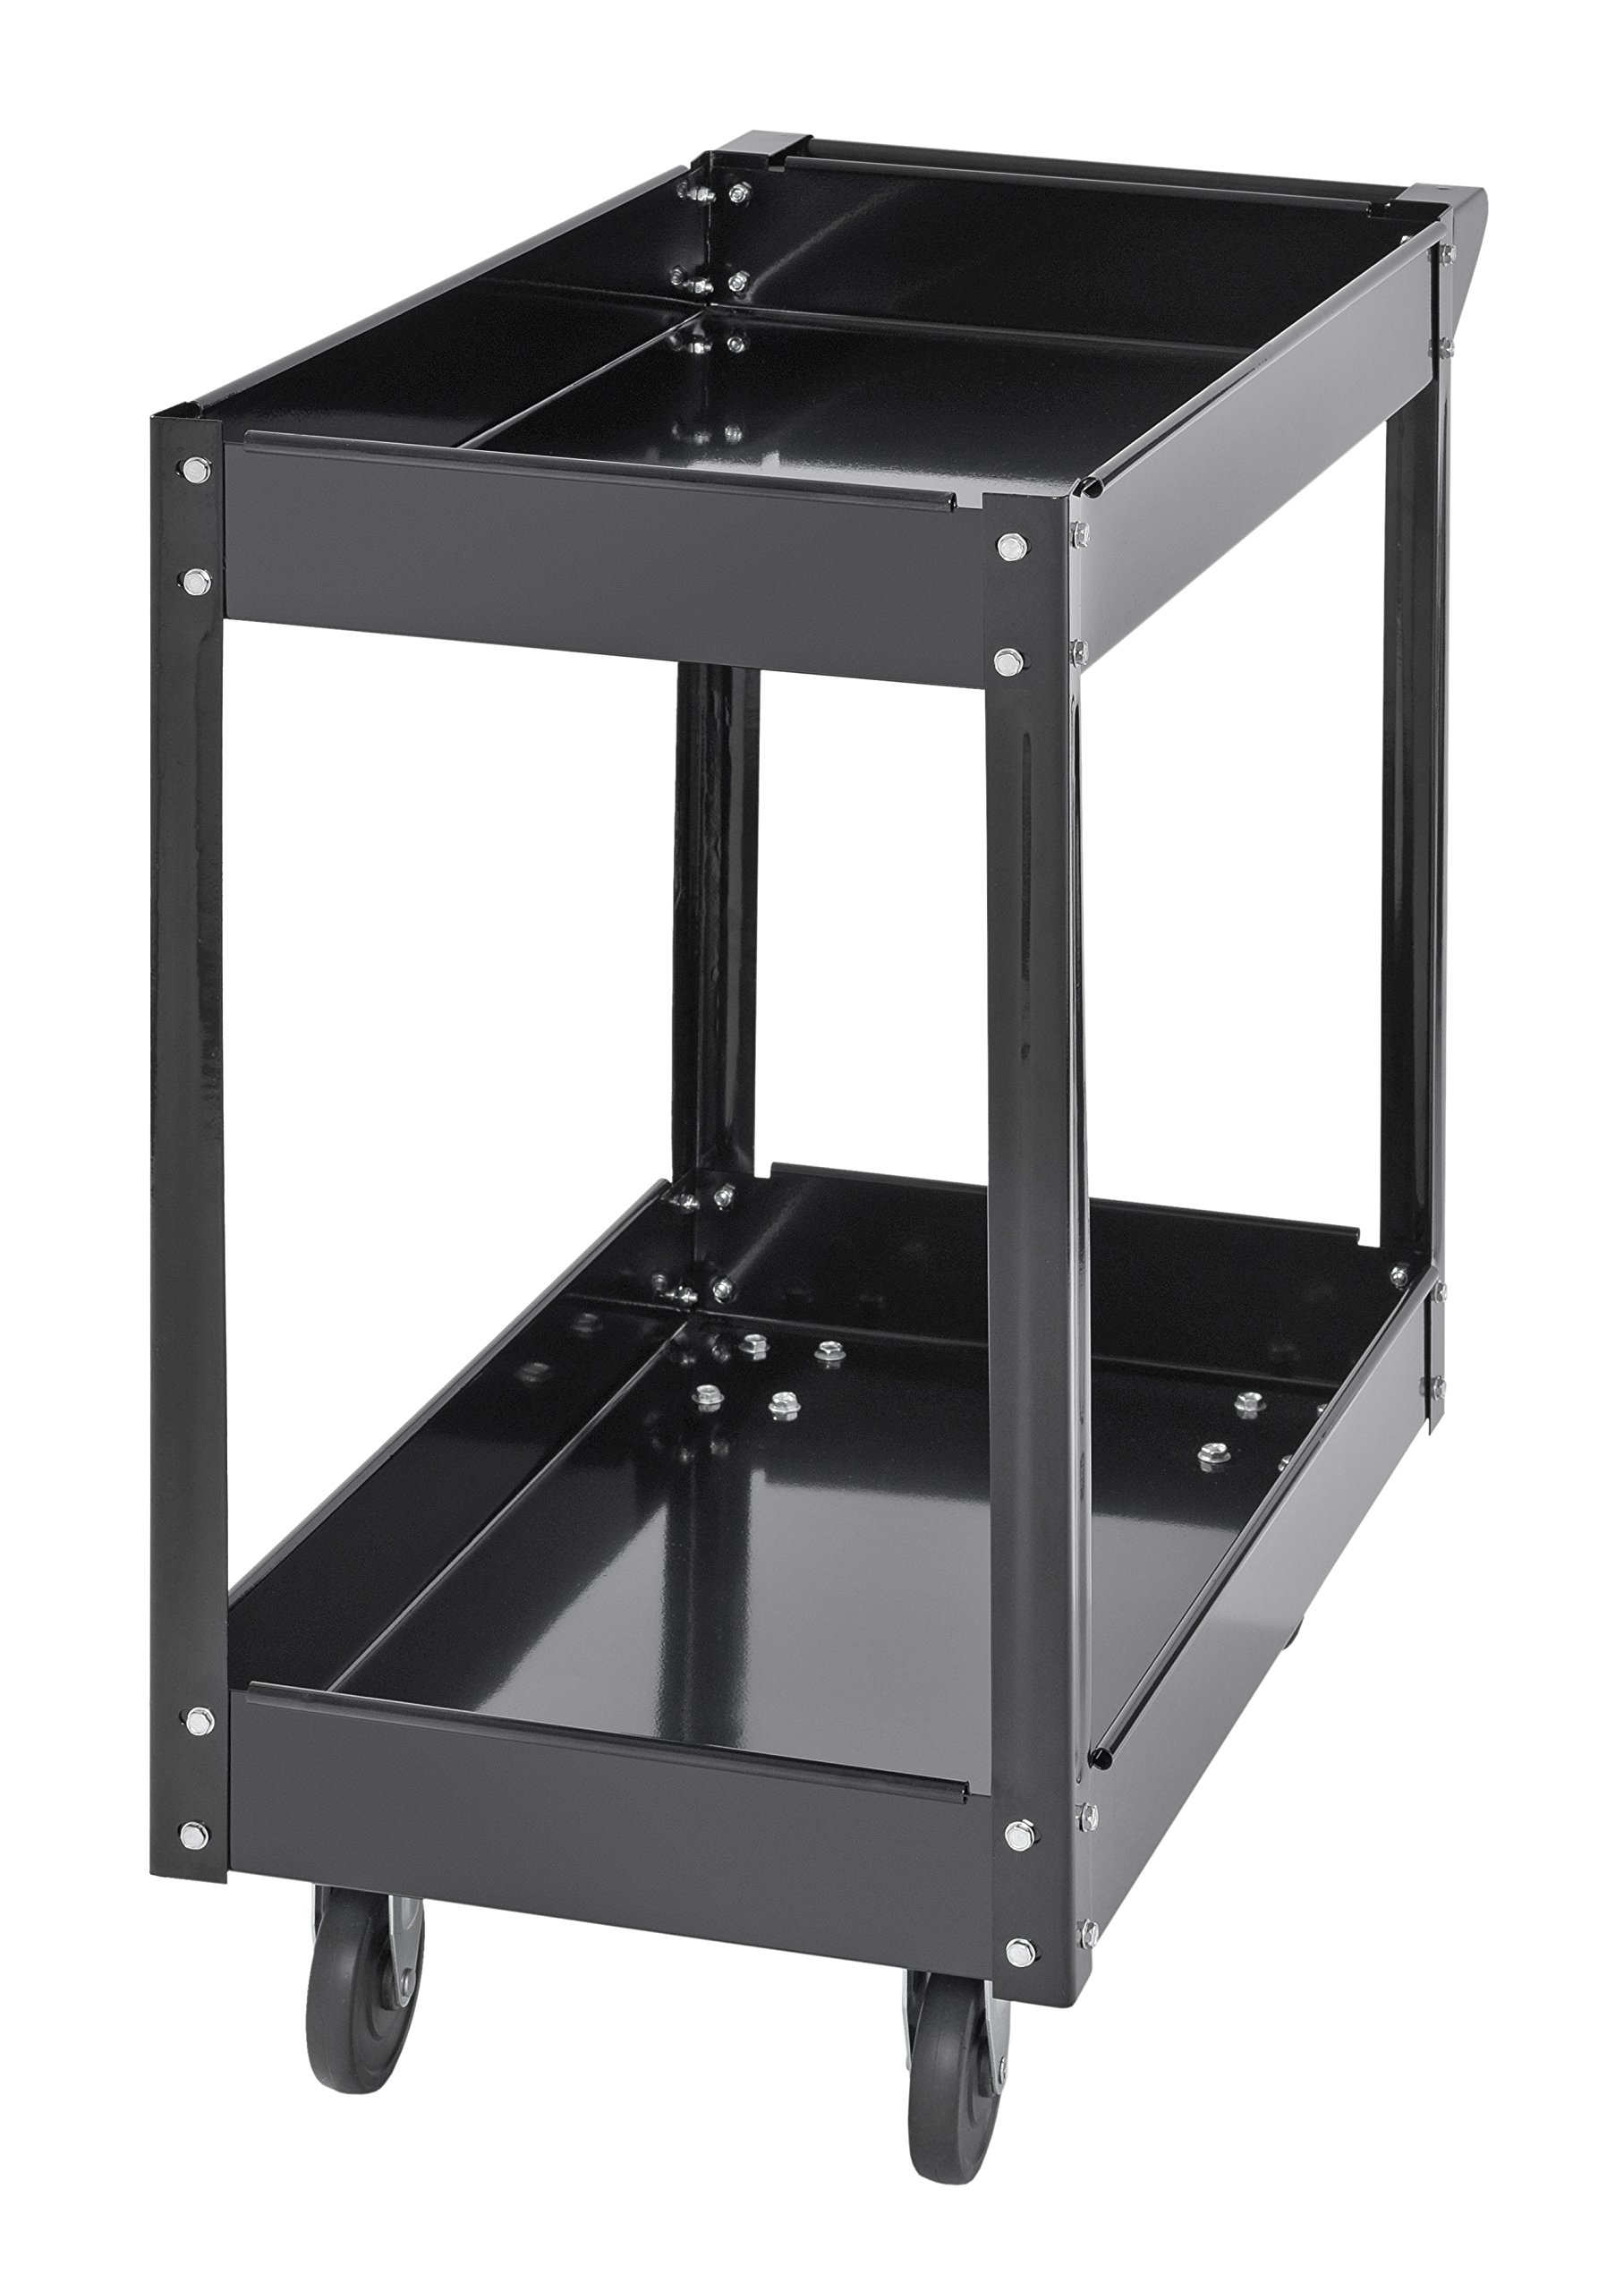 Muscle Rack SC3016 Industrial Black Commercial Service Cart, Steel, 220Lbs Capacity, 33'' Width x 30.5'' Height x 16'' Depth, 2 Shelves, 30.5'' Height, 33'' Width, 16'' Length by Muscle Rack (Image #2)